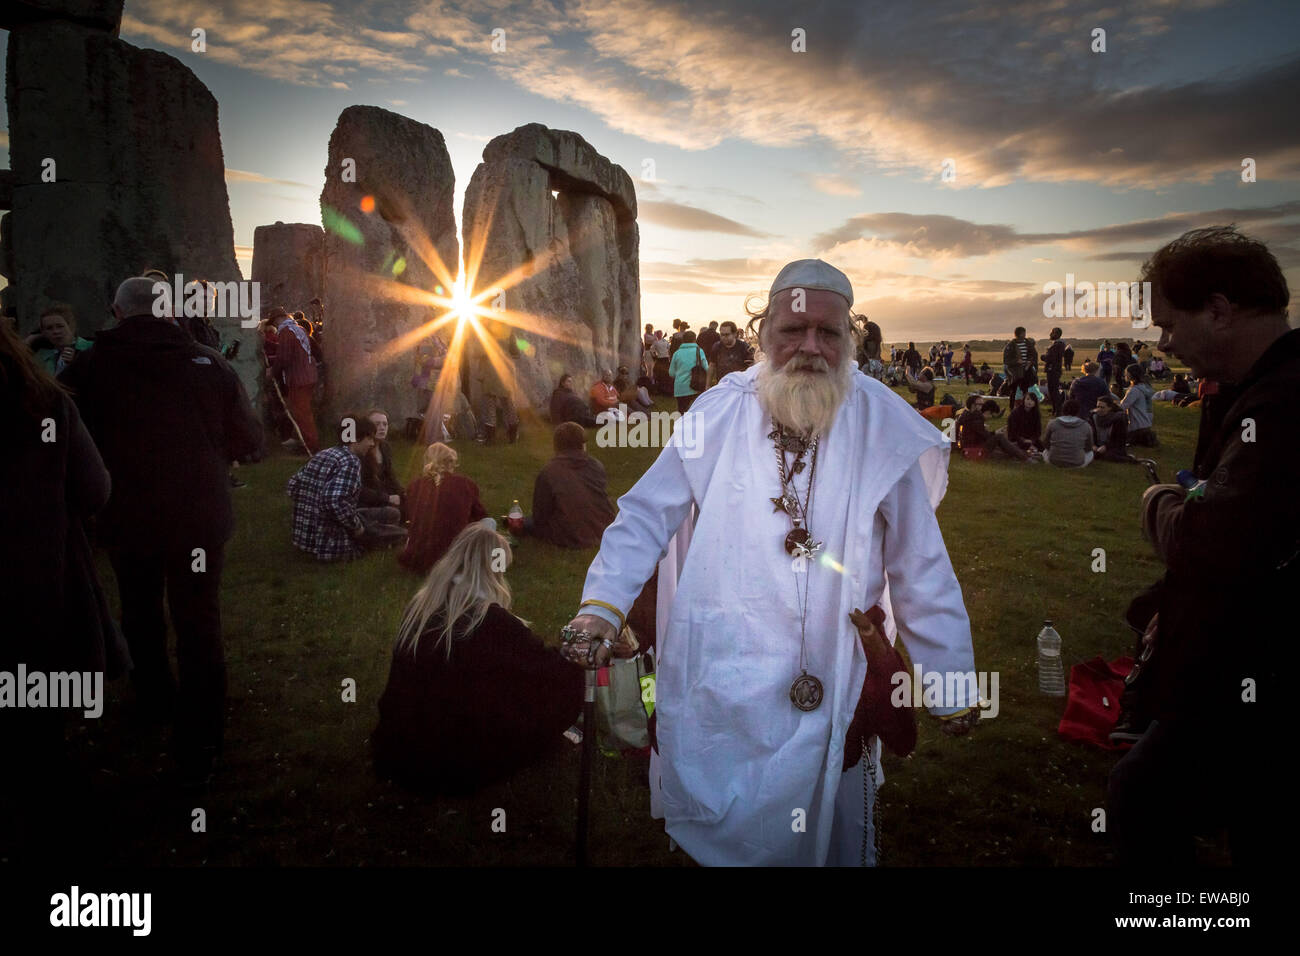 Avebury, UK. 21st June, 2015. Summer Solstice at Stonehenge Credit:  Guy Corbishley/Alamy Live News - Stock Image